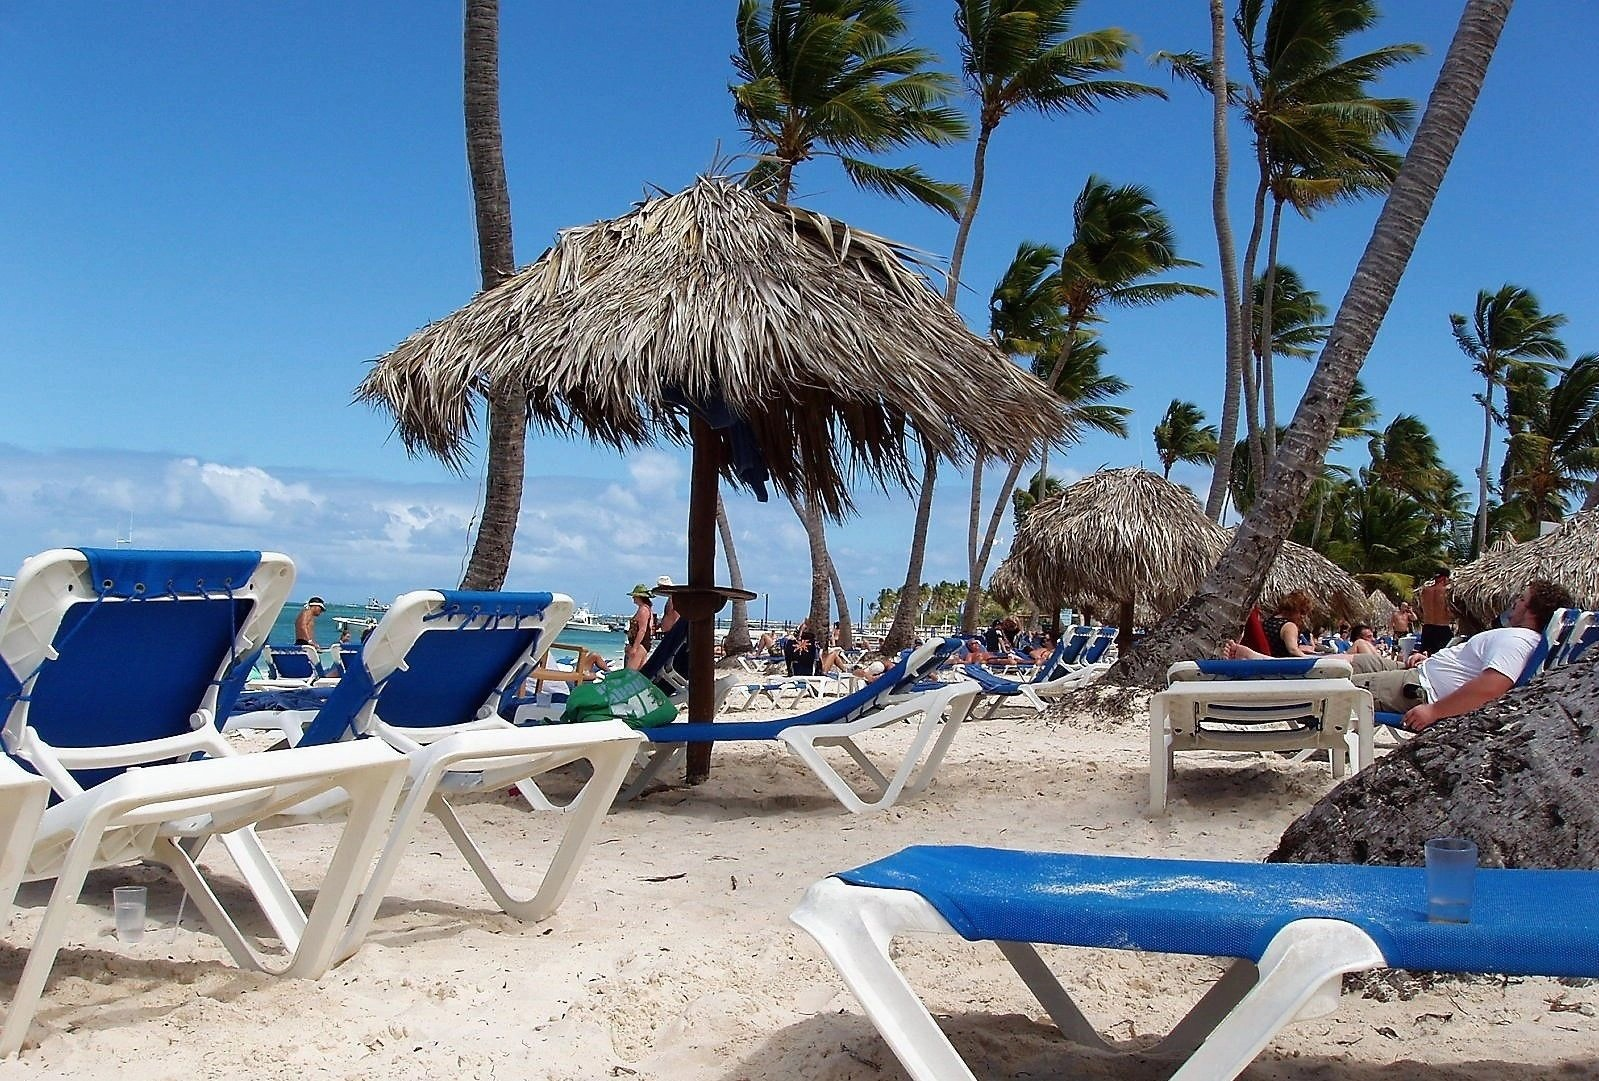 Sunbeds in the beach in punta cana